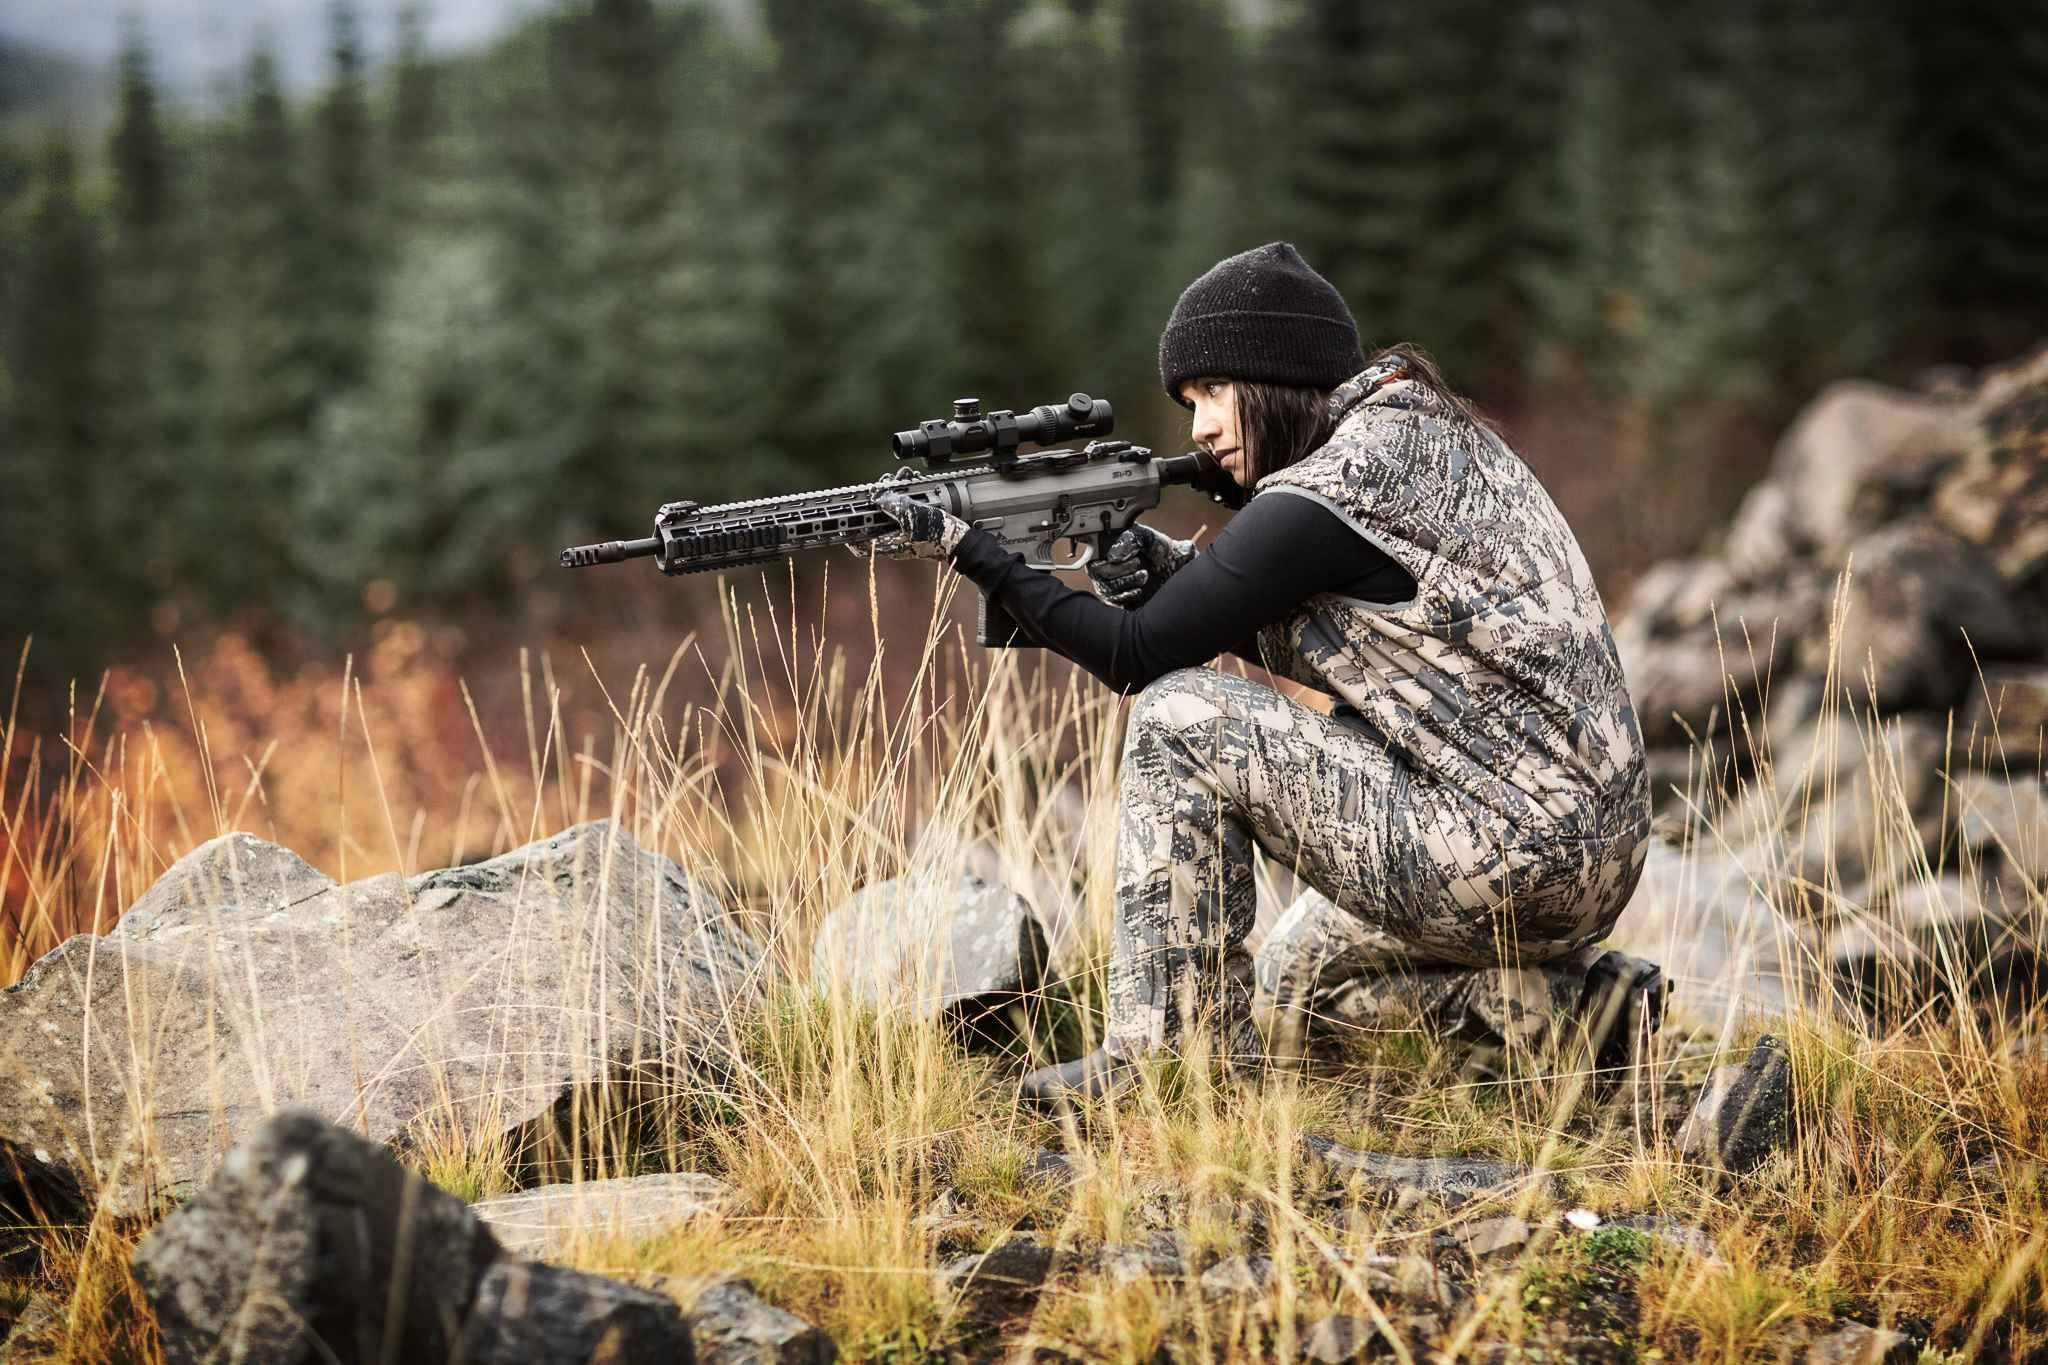 Semi-Auto Hunting in Penn –How the Black Rifle Went Mainstream